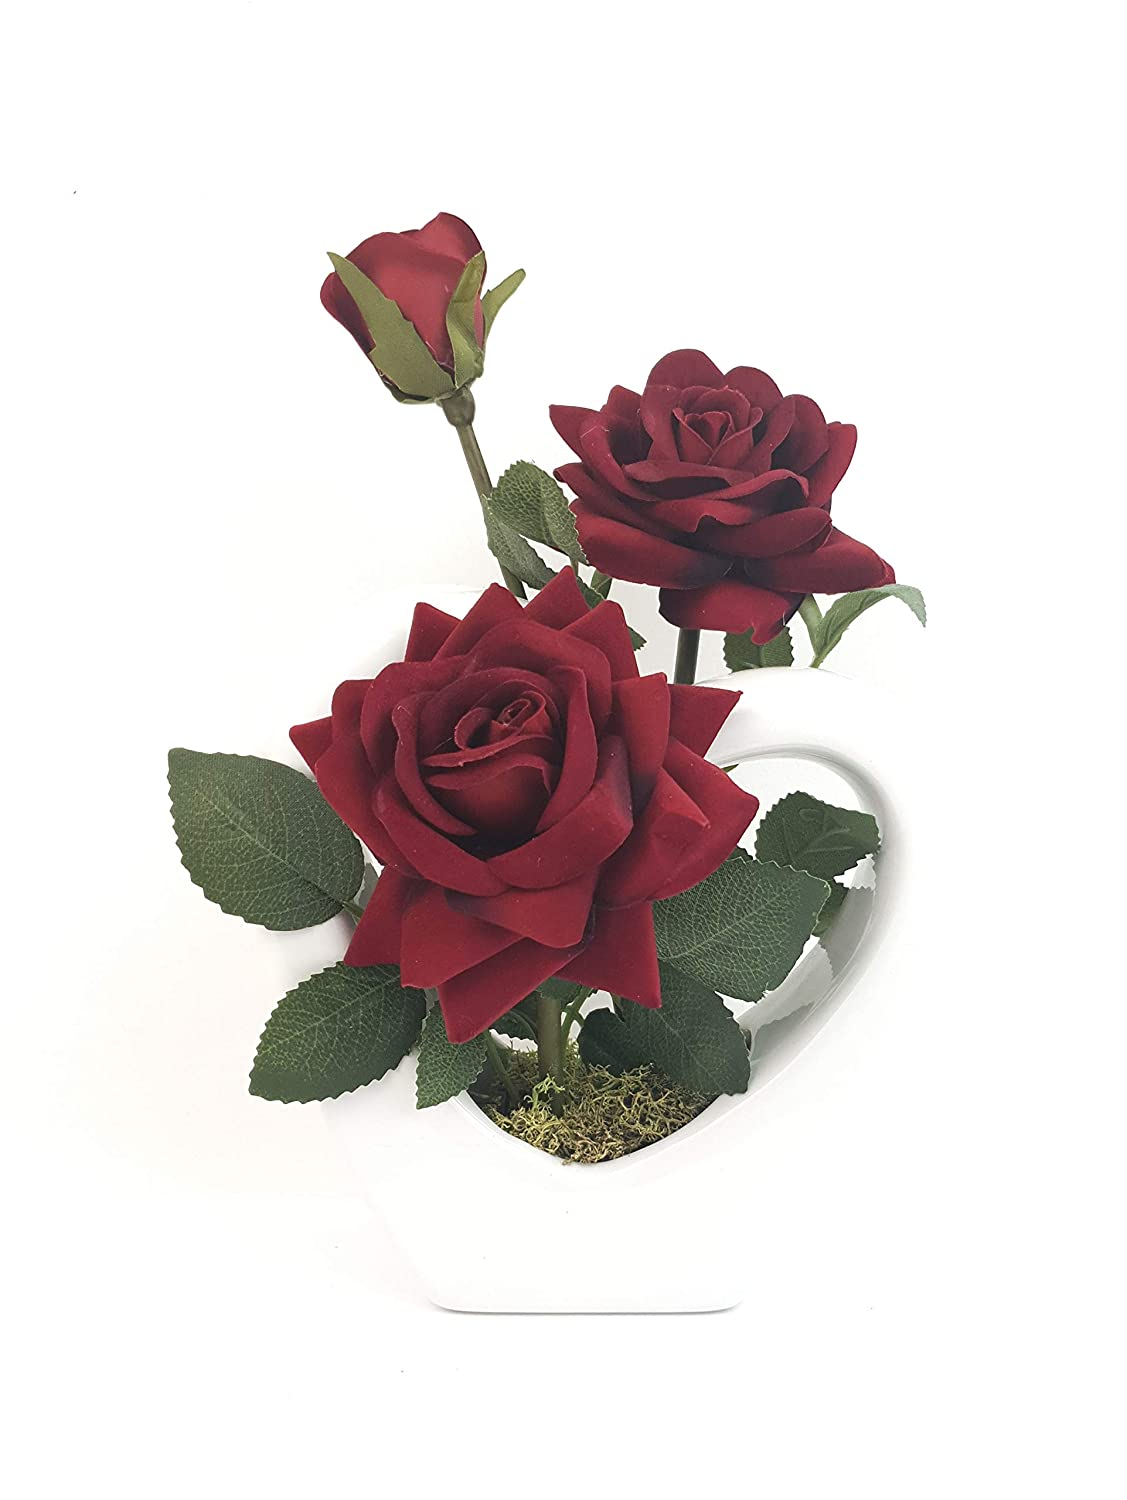 SIMPLY GIFT SOLUTIONS LTD ARTIFICIAL SILK SUPREME OPEN ROSE IN WHITE HEART SHAPE CERAMIC VASE 16CM, VALENTINES, GIFTS